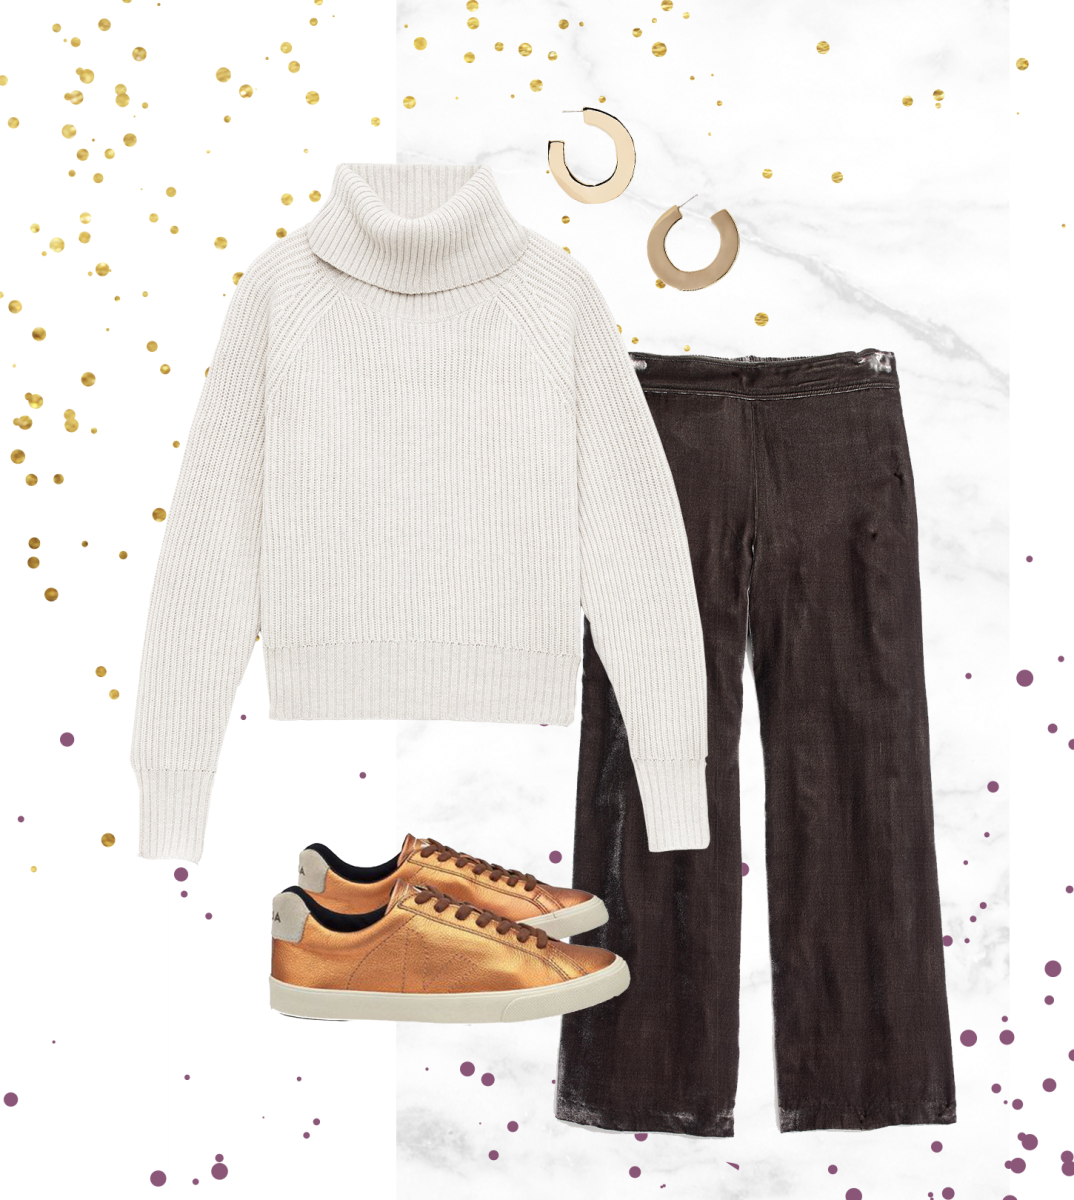 1. Sweater, Aritzia, $145 / 2. Pants, Madewell, $125 / 3. Sneakers, Veja, $131